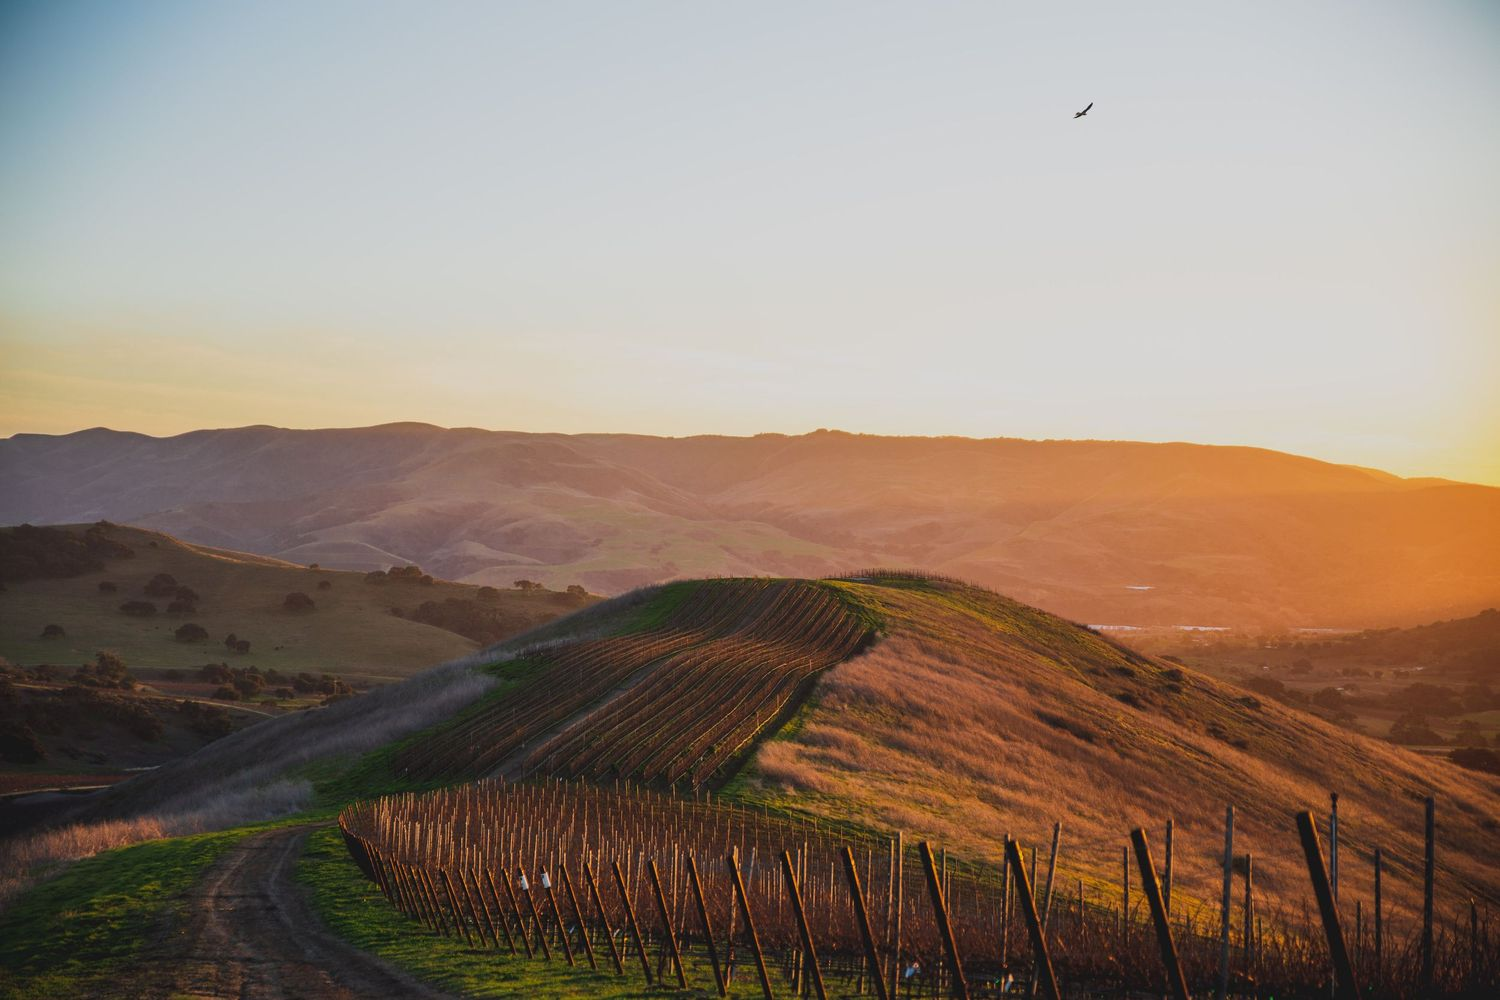 Landscape photo of John Sebastiano Vineyard in Buellton, California by Heather Daenitz of Craft & Cluster